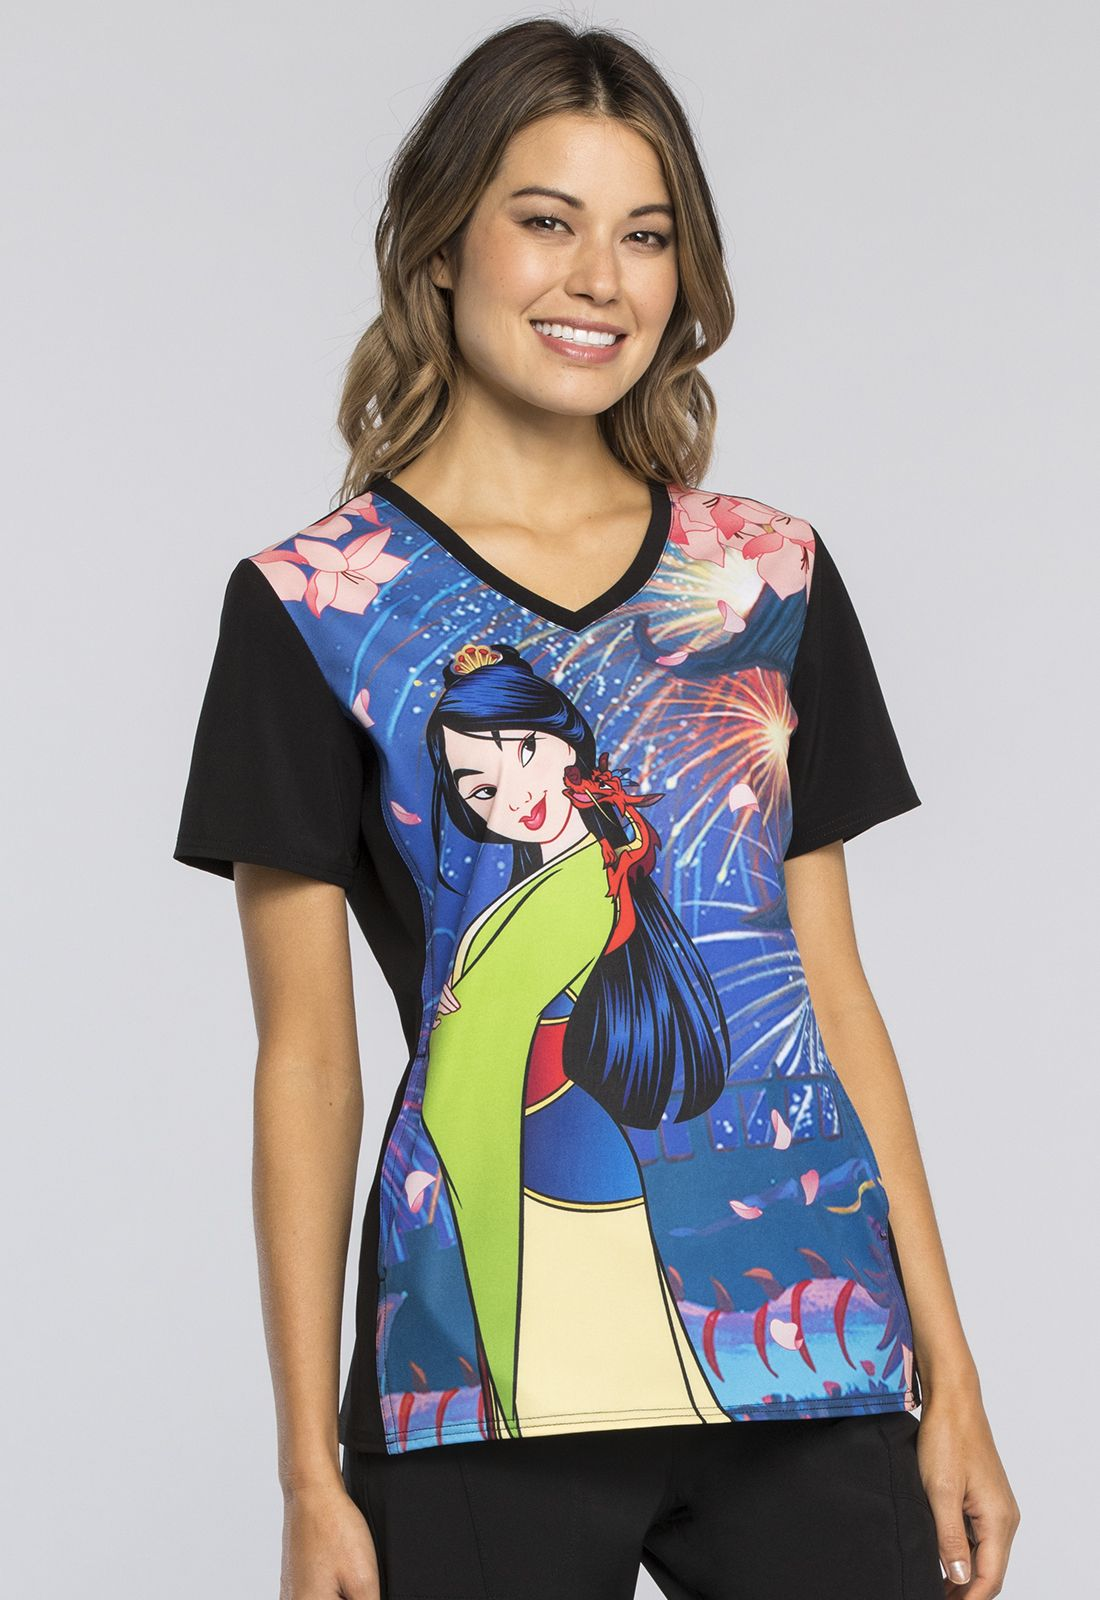 Tooniforms Mulan Print Top - Company Store Uniforms